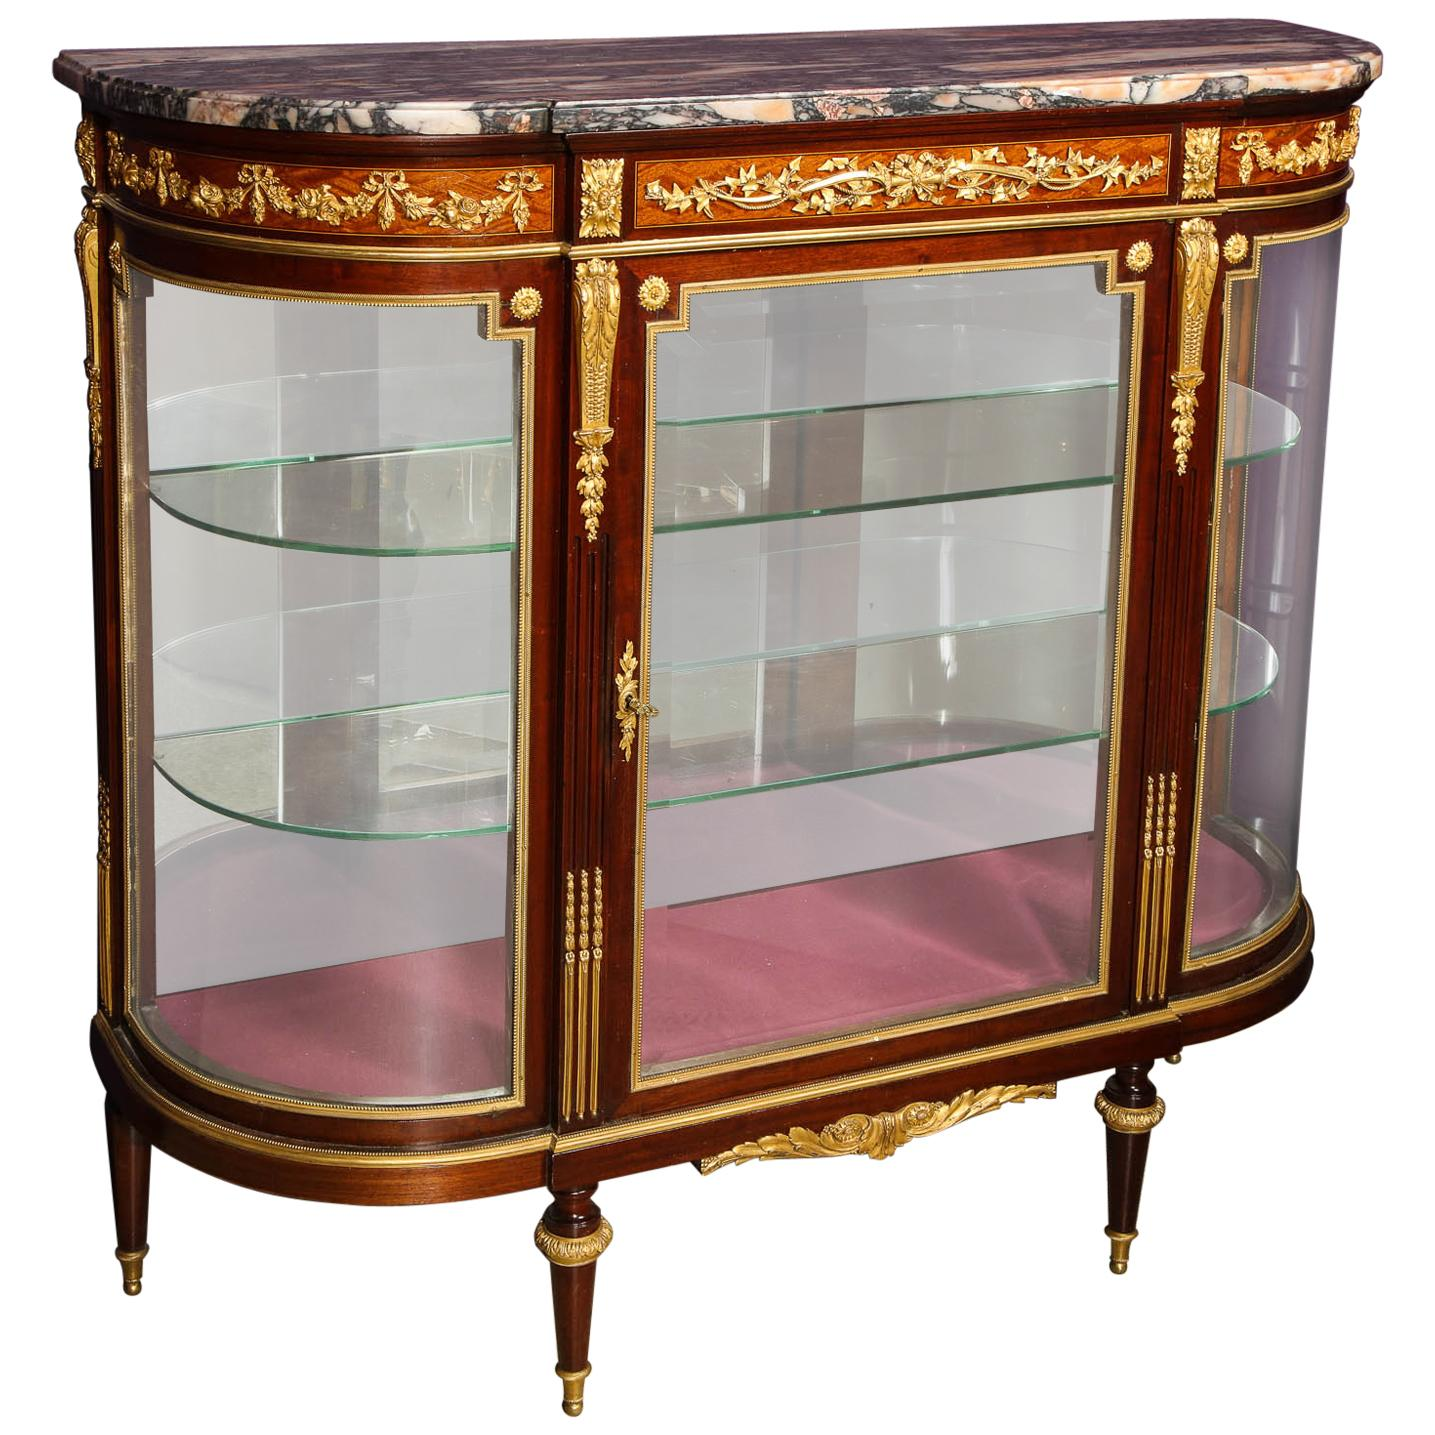 - Antique And Vintage Cabinets - 10,019 For Sale At 1stdibs